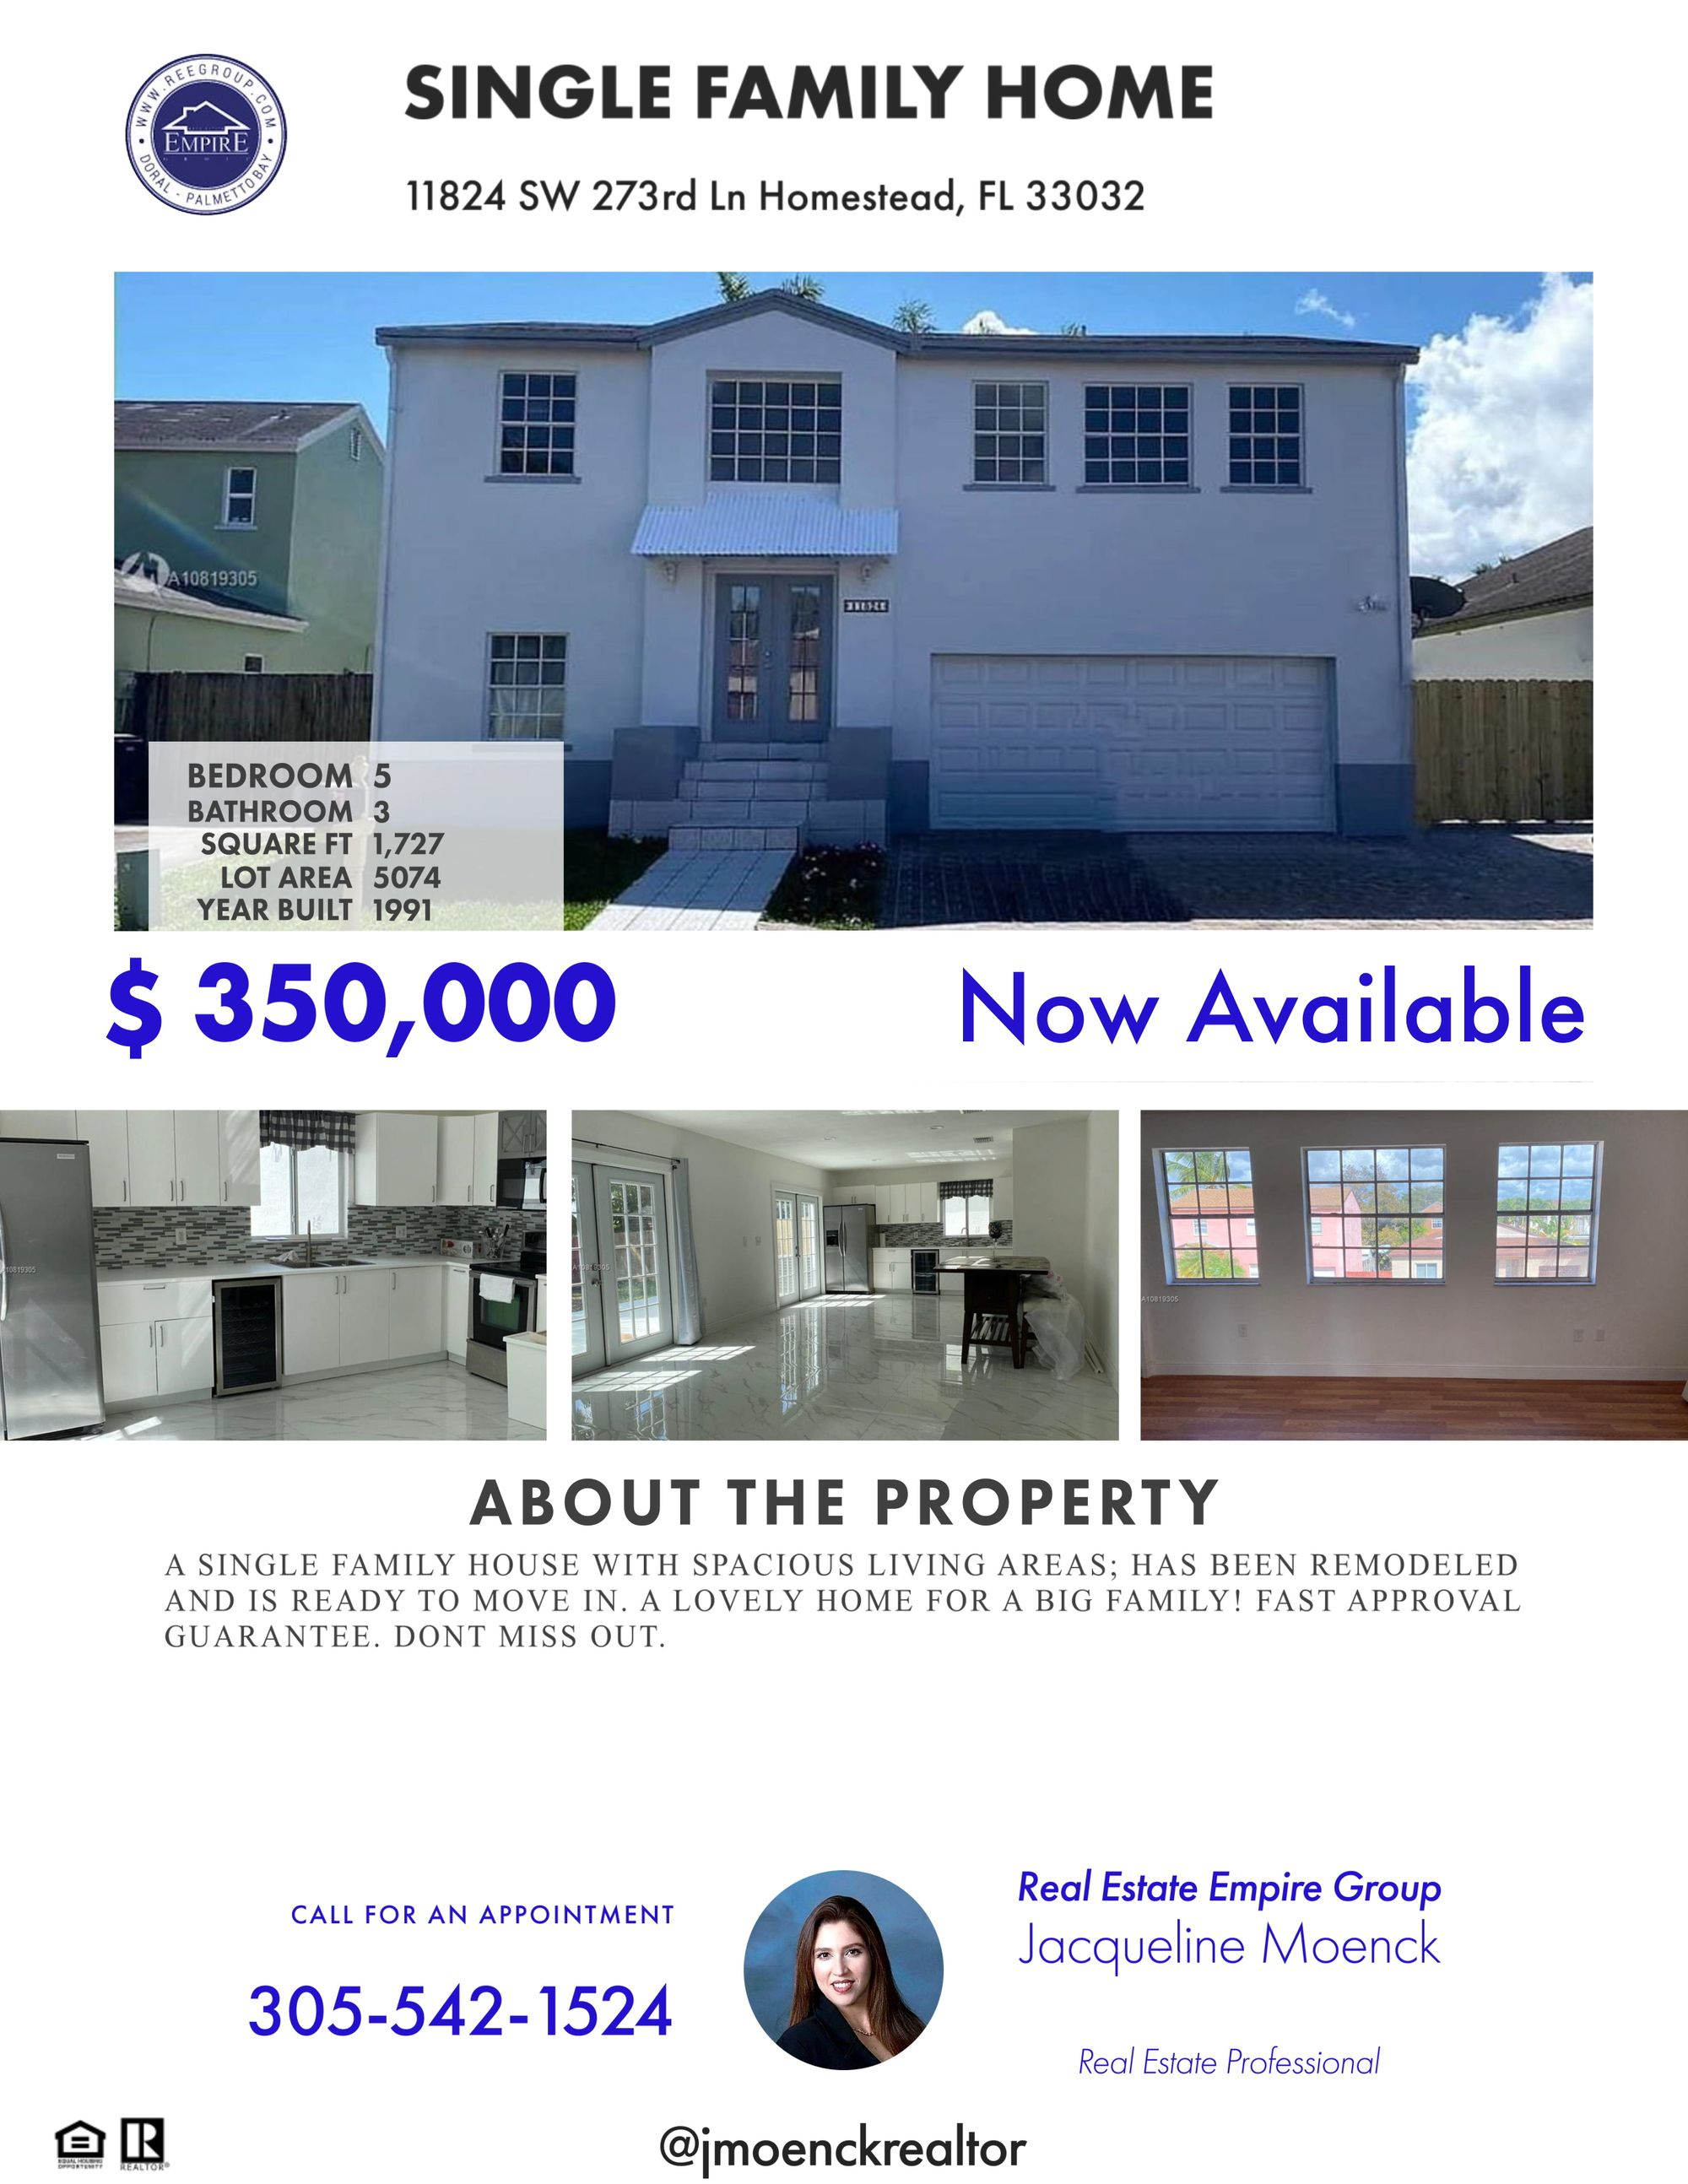 A SINGLE FAMILY HOUSE WITH SPACIOUS LIVING AREAS; HAS BEEN REMODELED AND IS READY TO MOVE IN. A LOVELY HOME FOR A BIG FAMILY! FAST APPROVAL GUARANTEE. DONT MISS OUT.  #miamifl #southflorida #coralgables #brickell #miamilakes #realestate #realestateagent #realestatesales #realestatemiami #realestatebroker #realestateagents #casasenventa #luxuryhomes #casasdelujo #downtownmiami #miamirealestate #miamirealtor